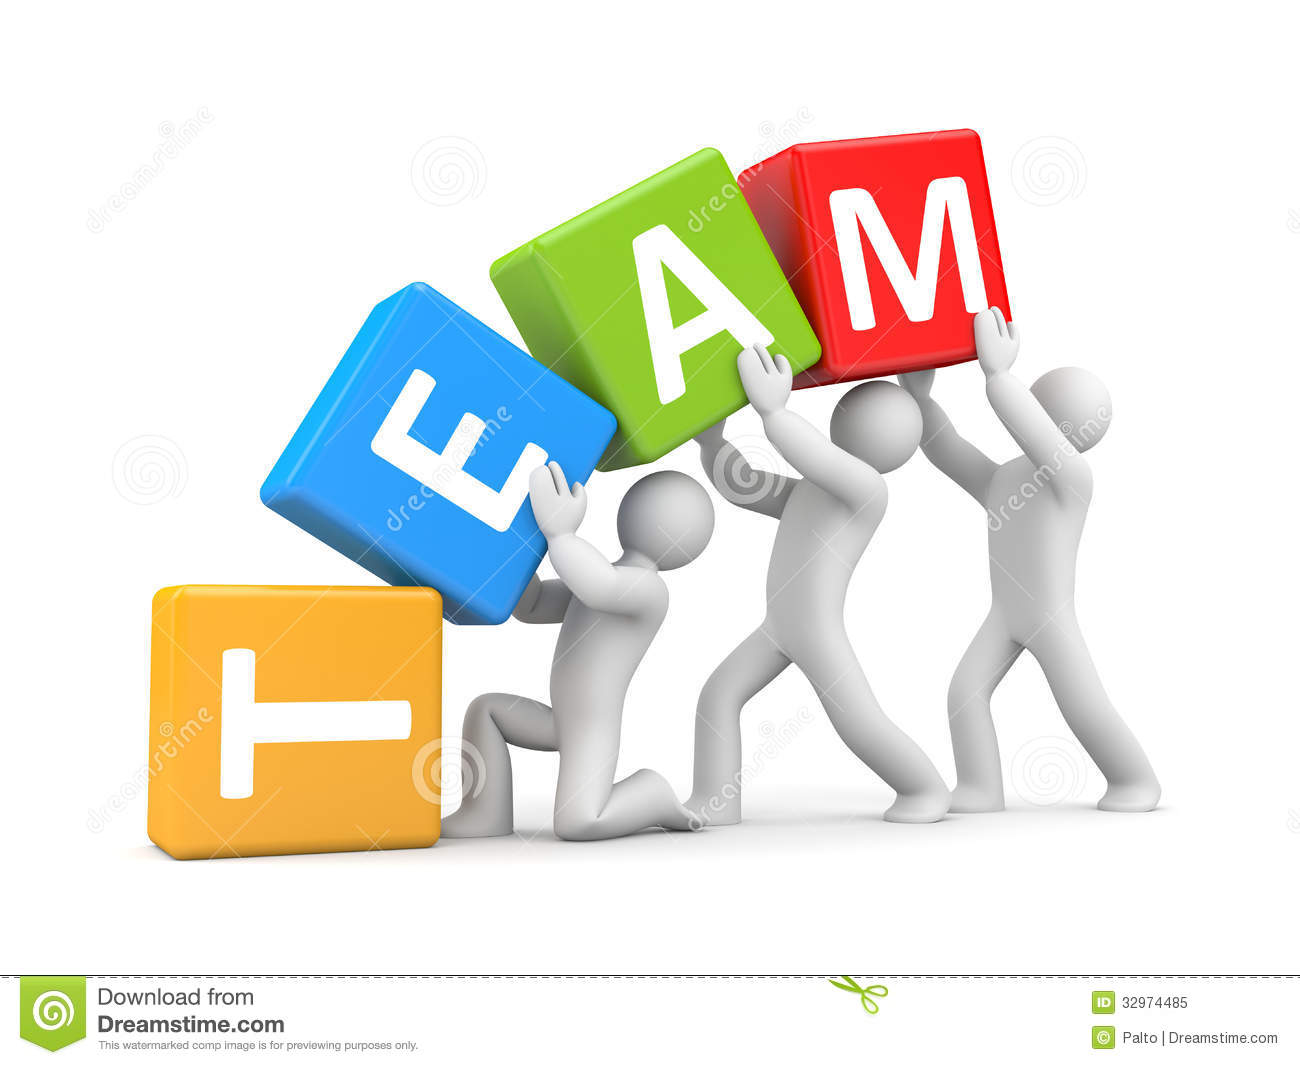 Teamwork Royalty Free Stock Photo - Image: 32974485